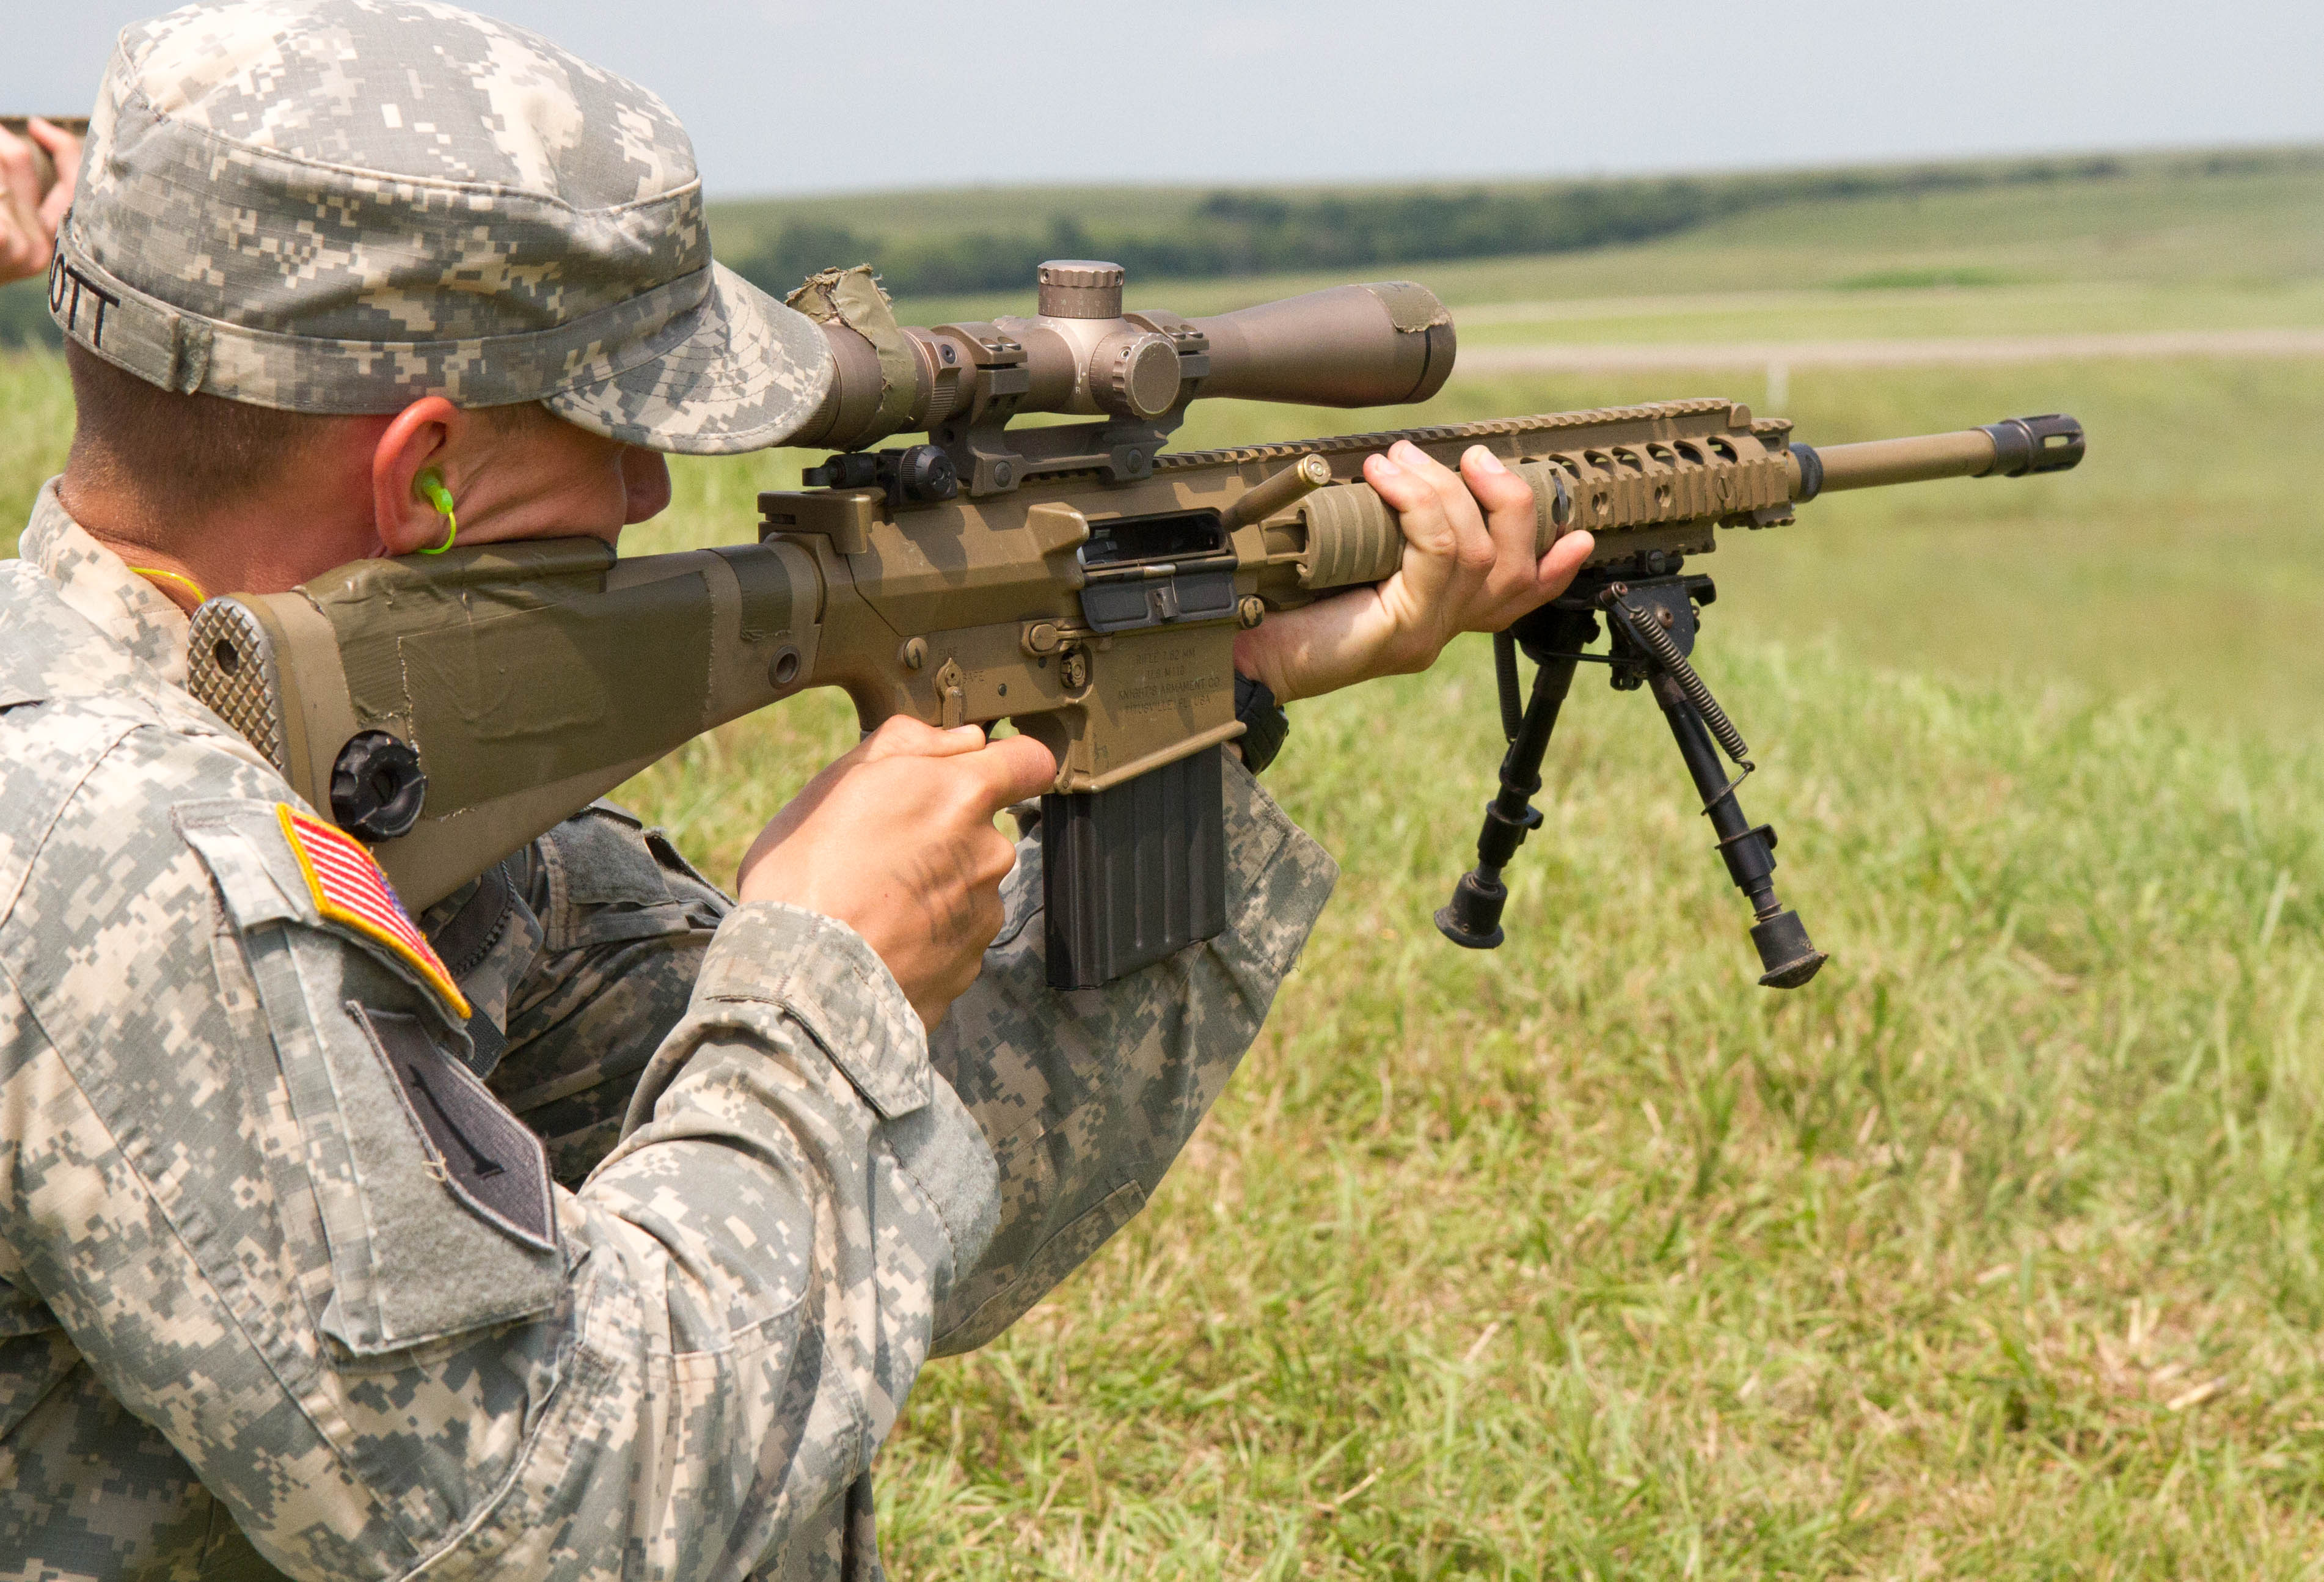 Army Picks Heckler Amp Koch Sniper Rifle To Replace M110